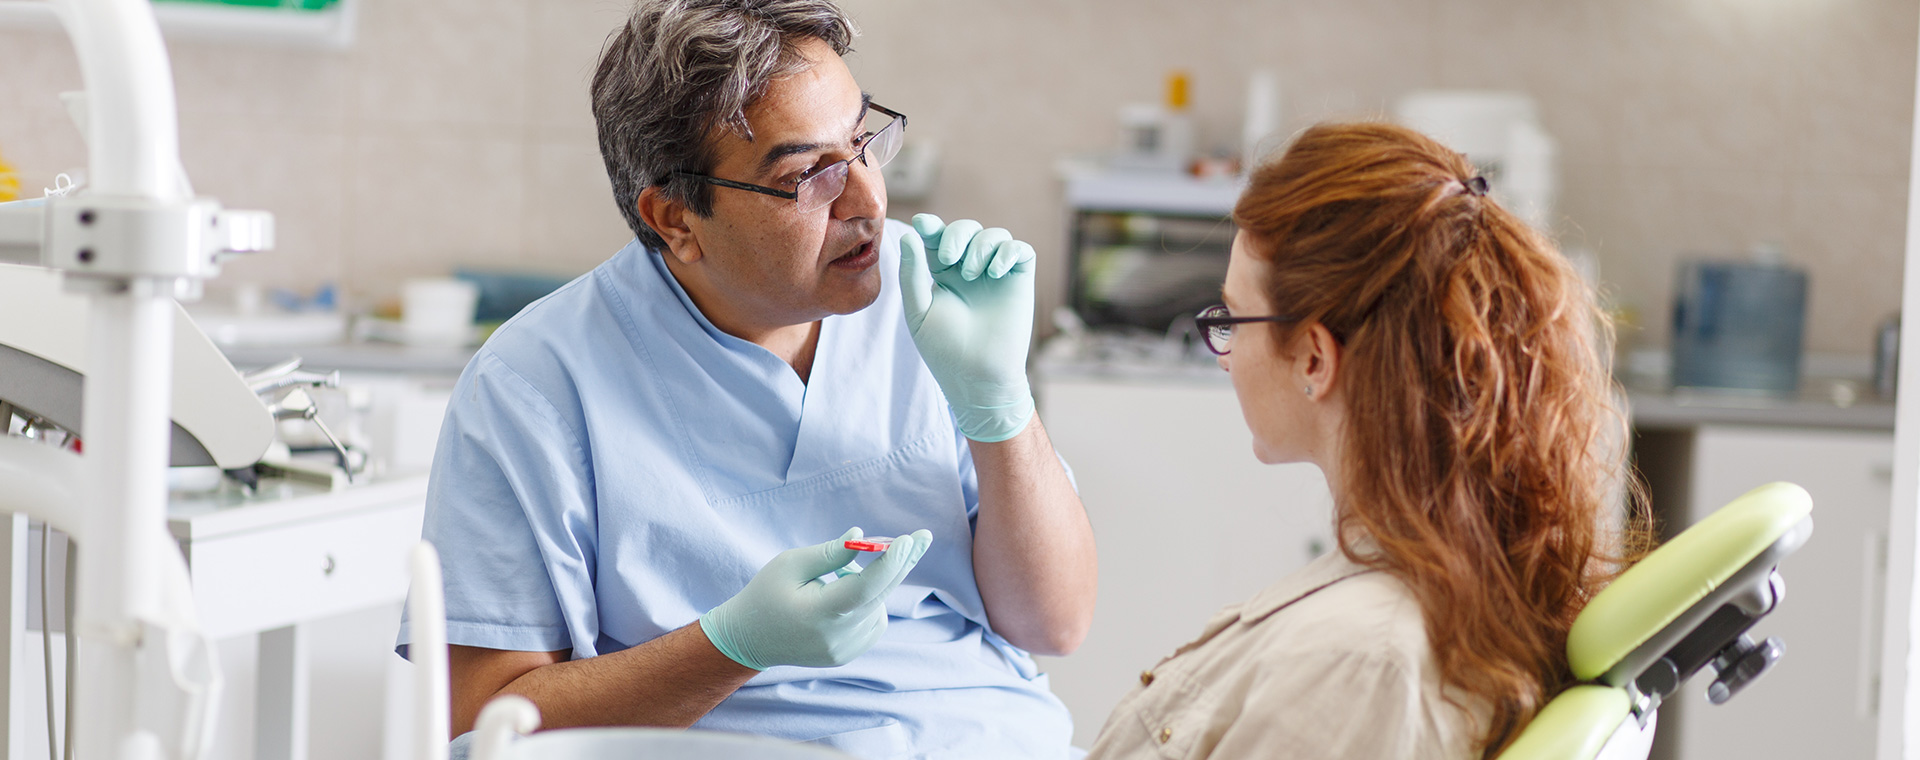 2020 dental fee guide update